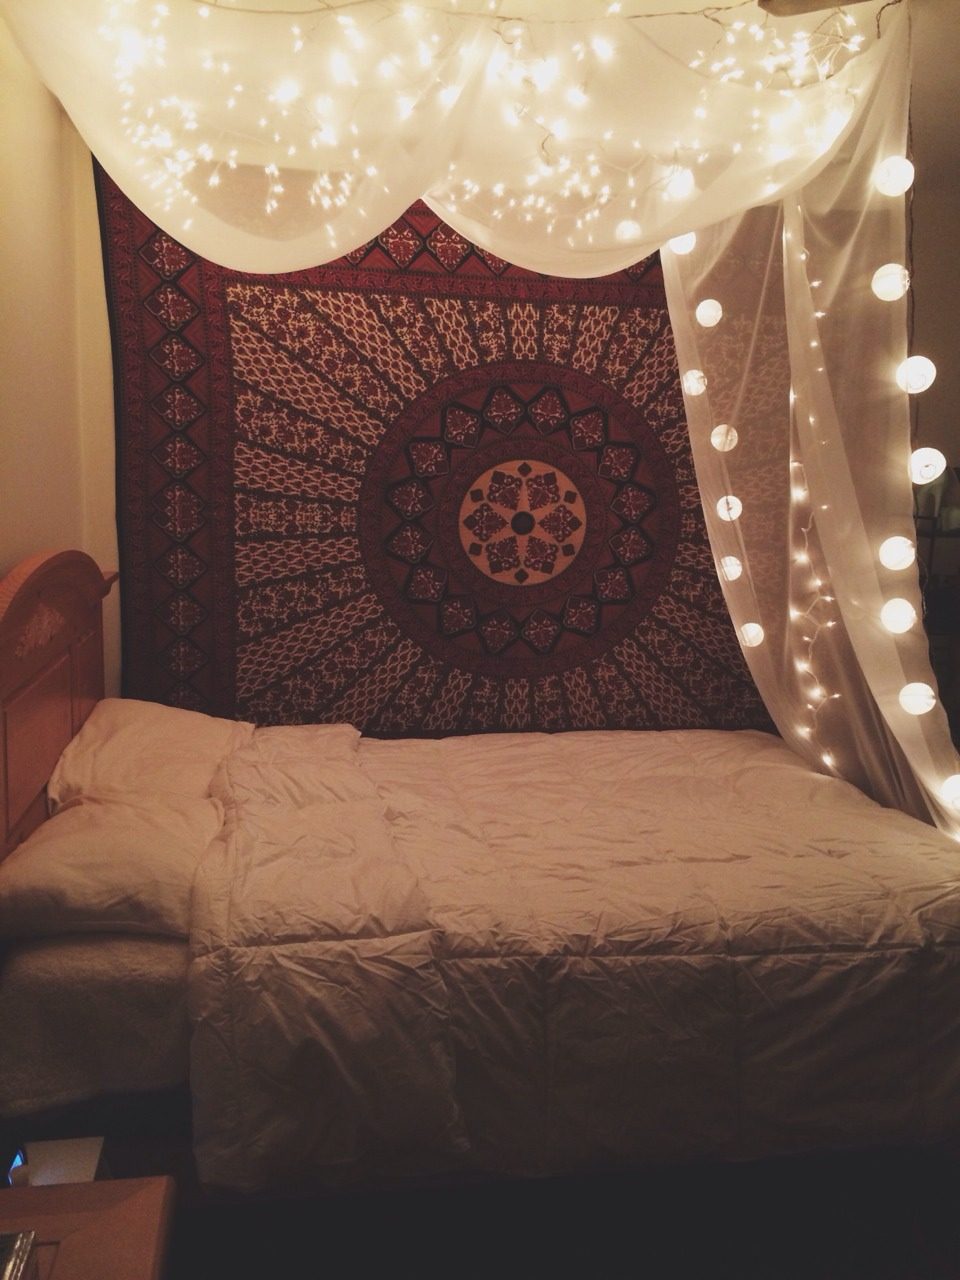 36 Images About Bedroom On We Heart It See More About Bedroom Room And Bed